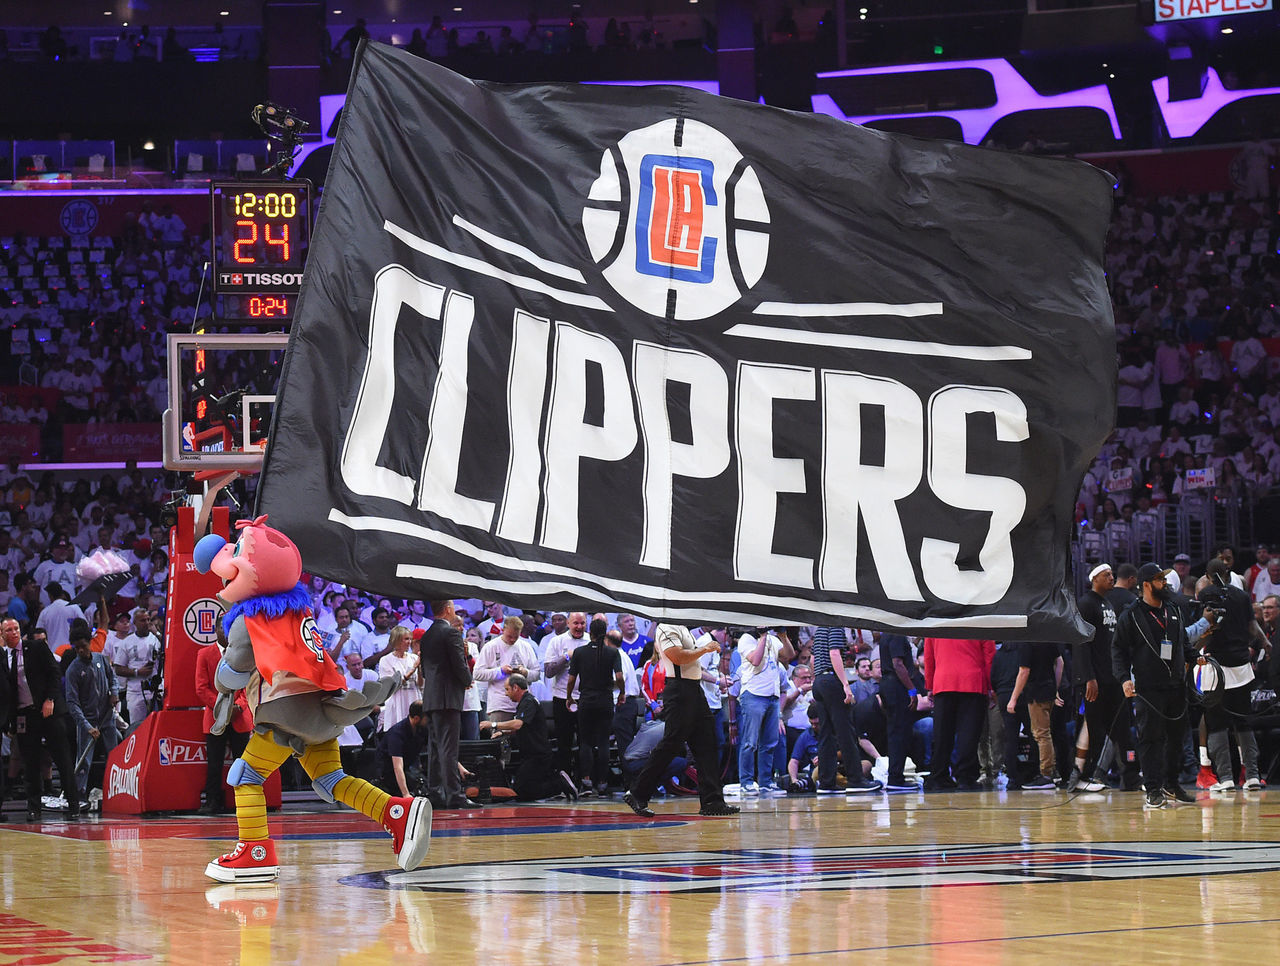 Cropped 2017 04 30t232141z 62180738 nocid rtrmadp 3 nba playoffs utah jazz at los angeles clippers